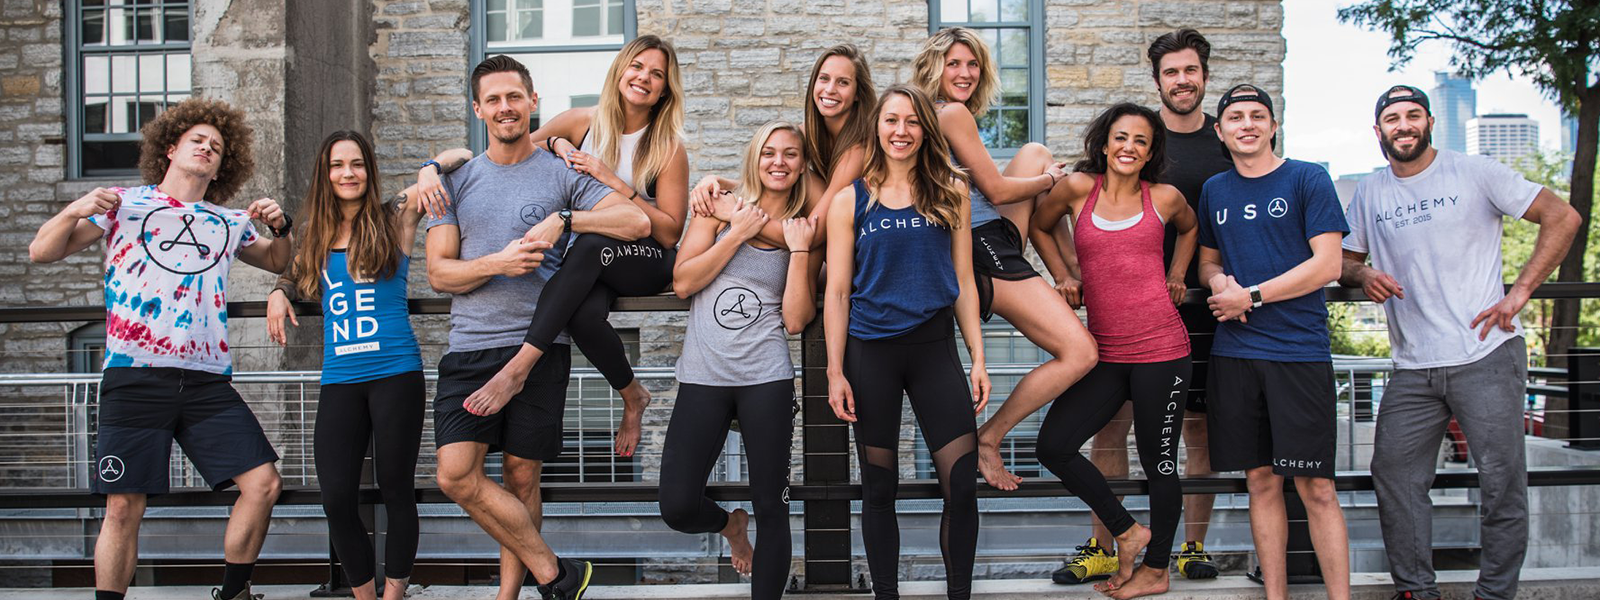 Lululemon Branded Customized Apparel